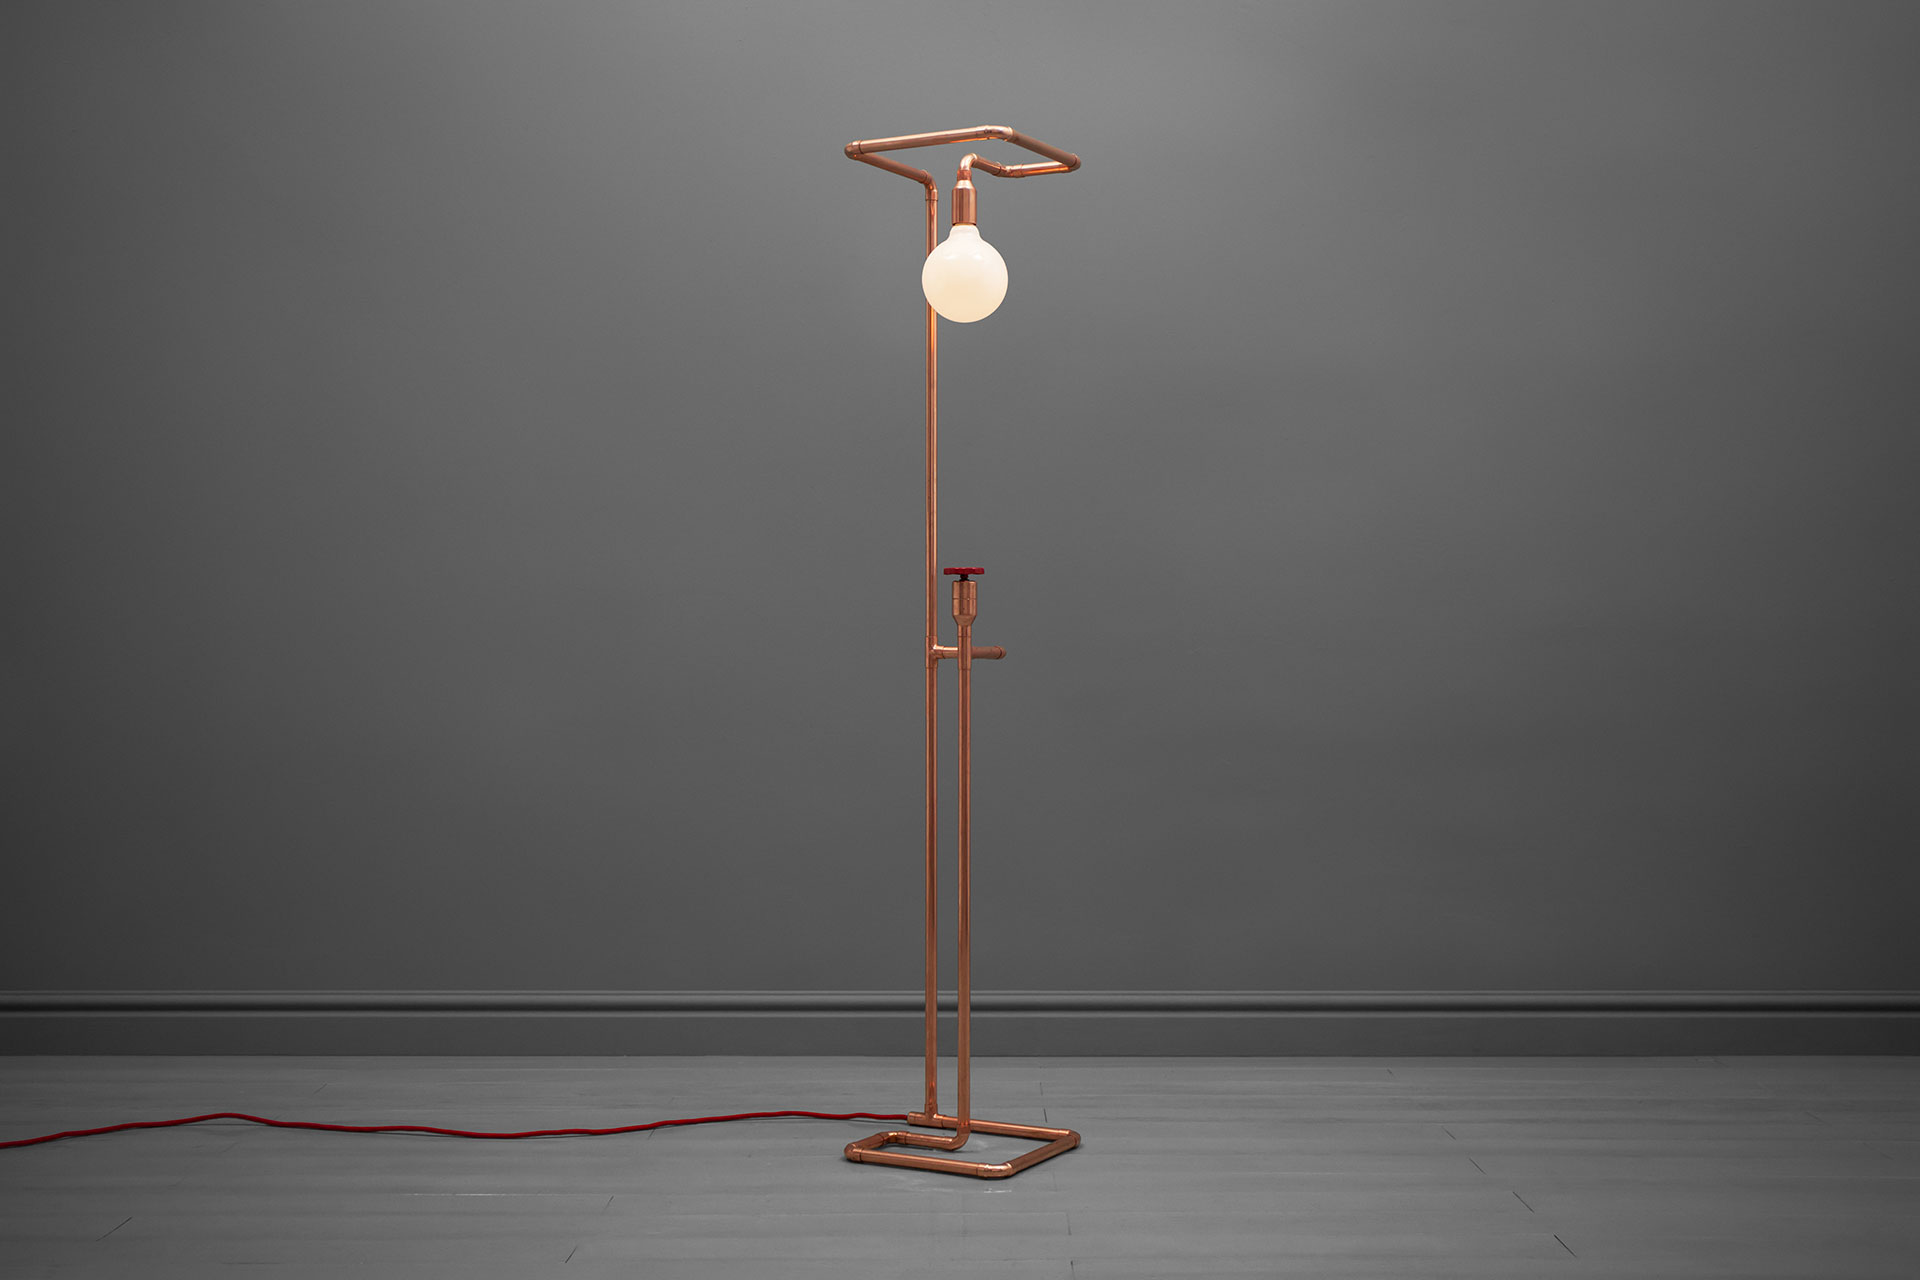 Industrial design copper tubing floor lamp inspired by installation art